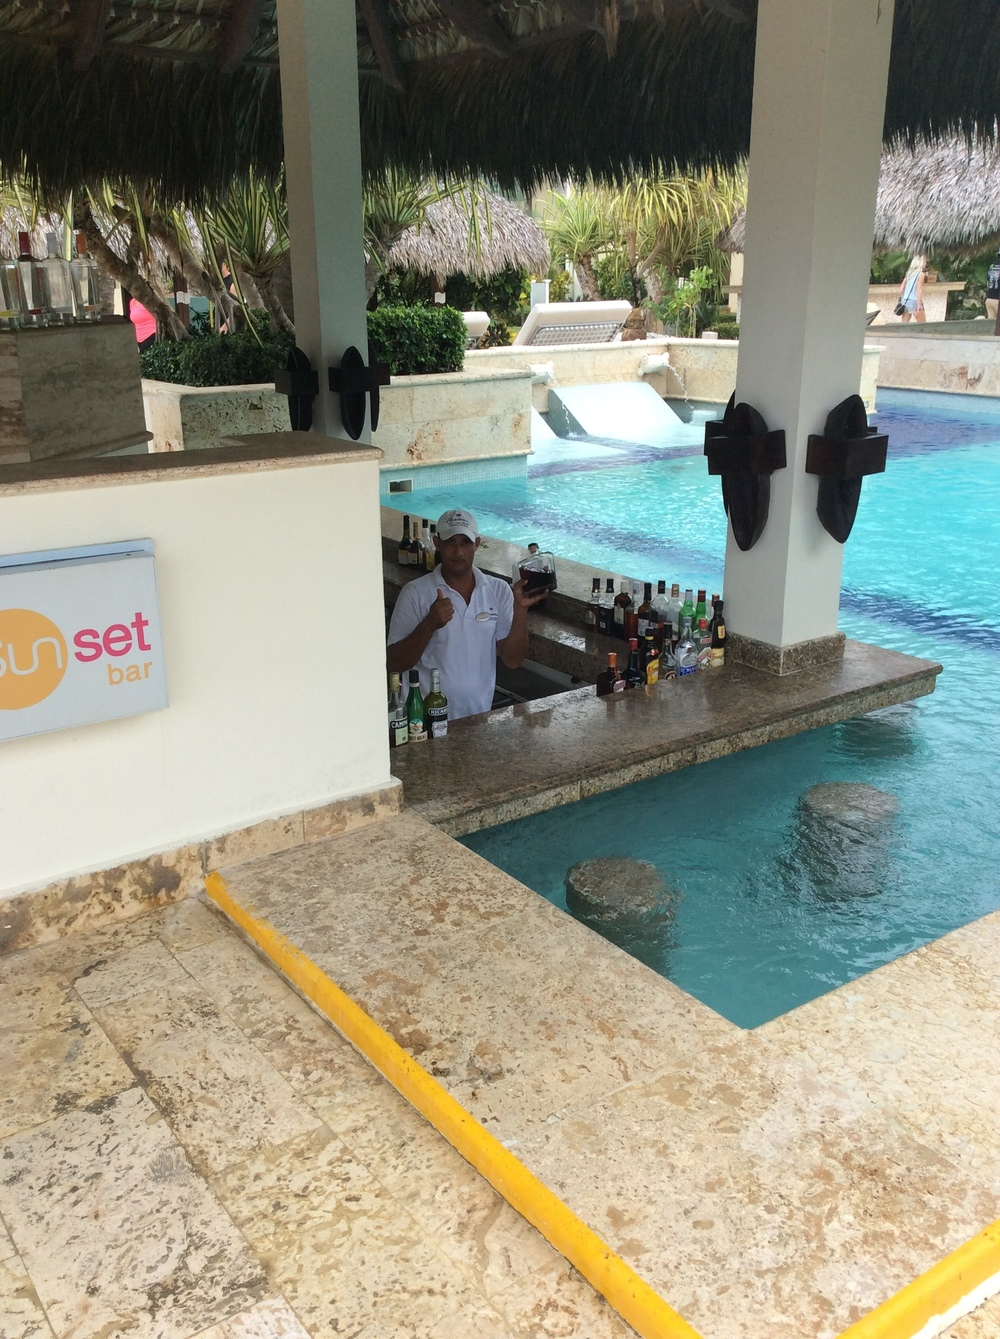 paradisus PC pool bar.JPG